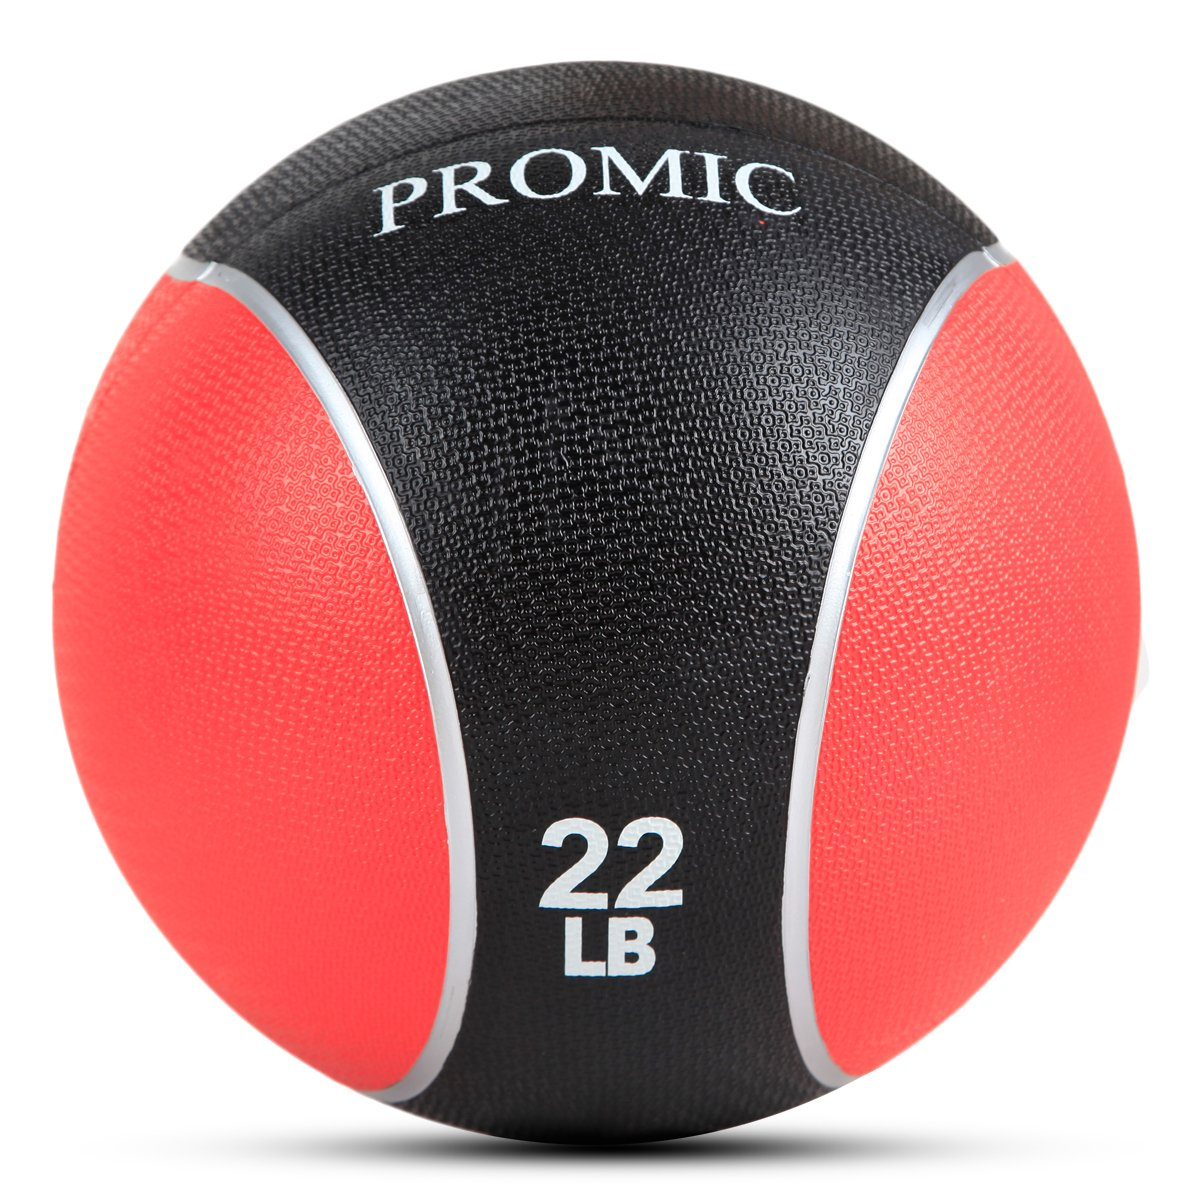 PROMIC Hand Weights Dumbbells Pair , Medicine Balls, Non Slip Design – Multiple Color Weight Options